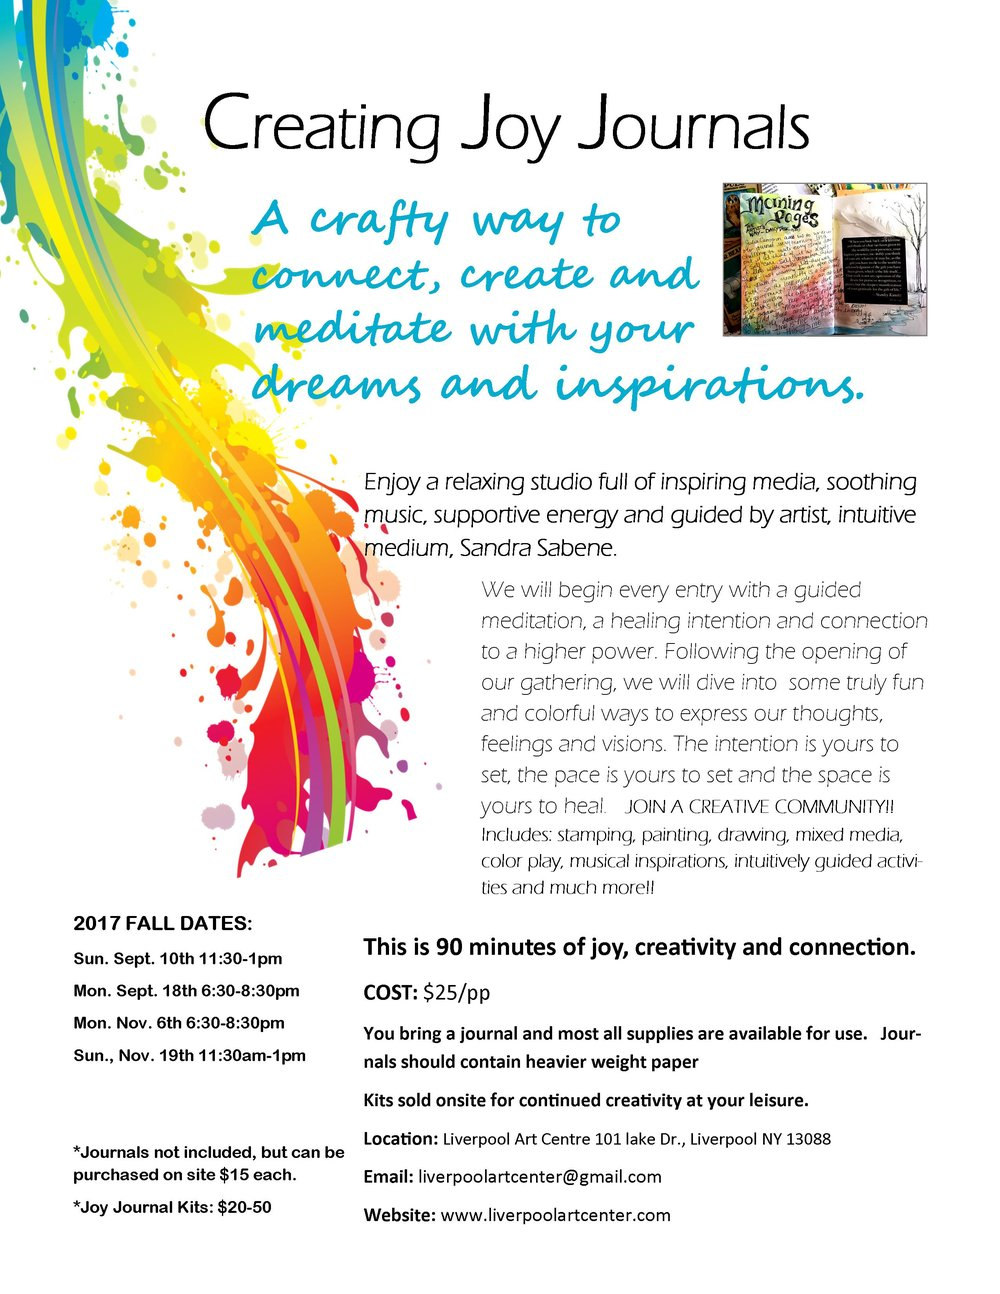 Creating Joy Journals flyer.jpg